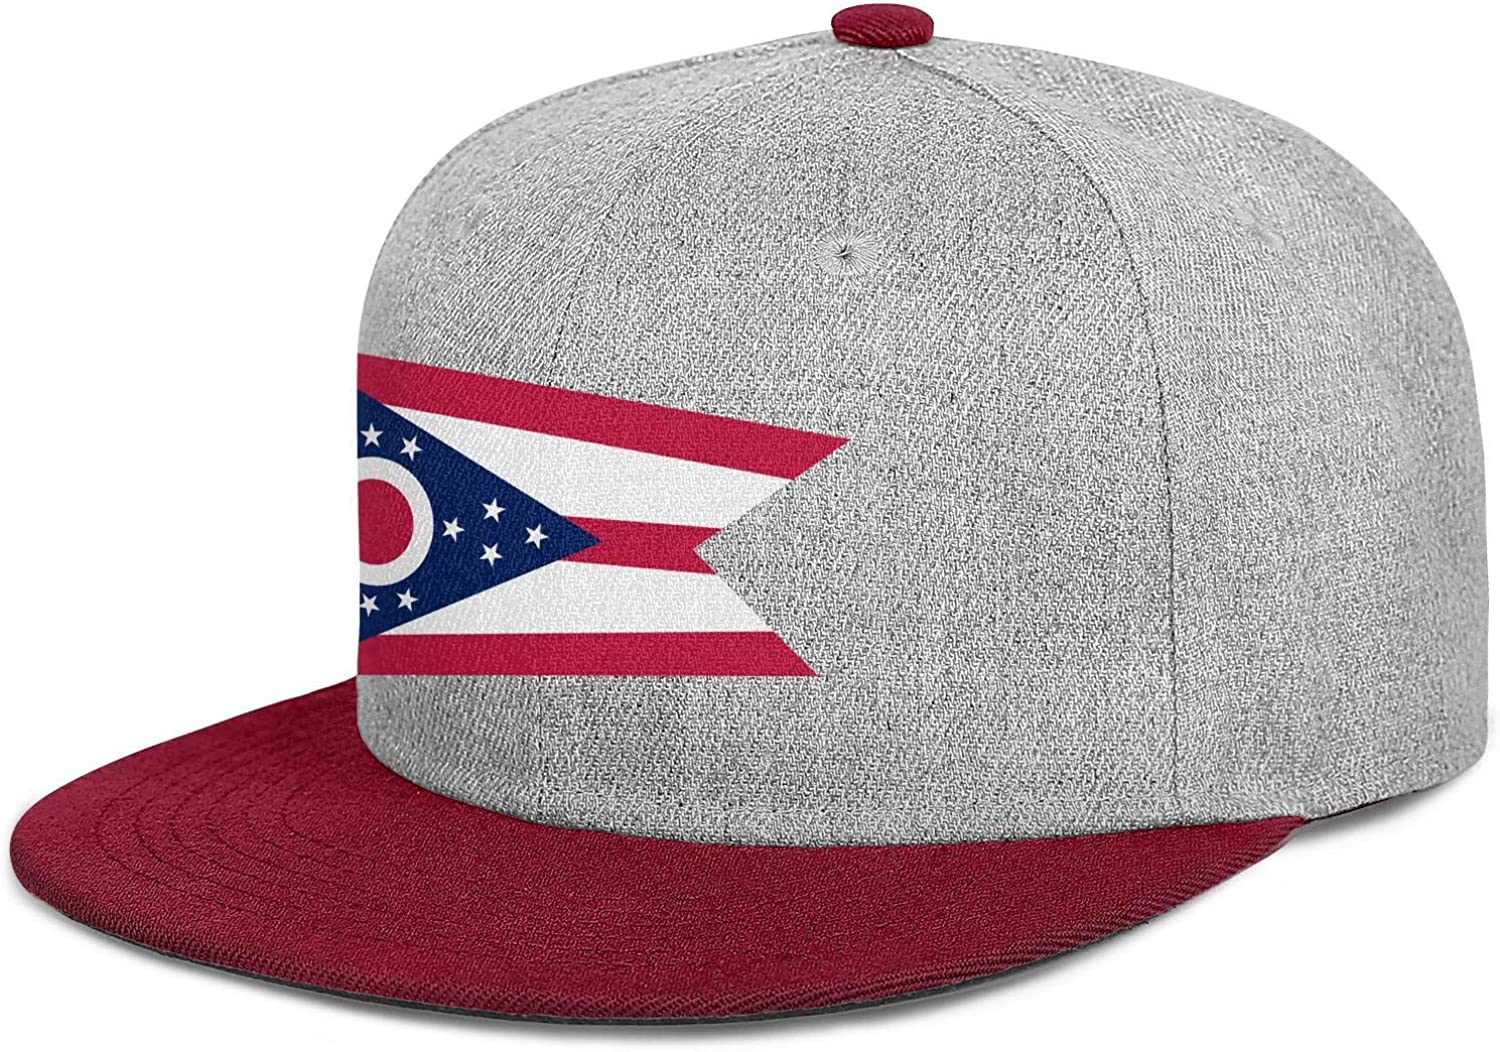 FYFYOK Mens Womens Dad Hats Ohio State Flag Snapback One Size Cap